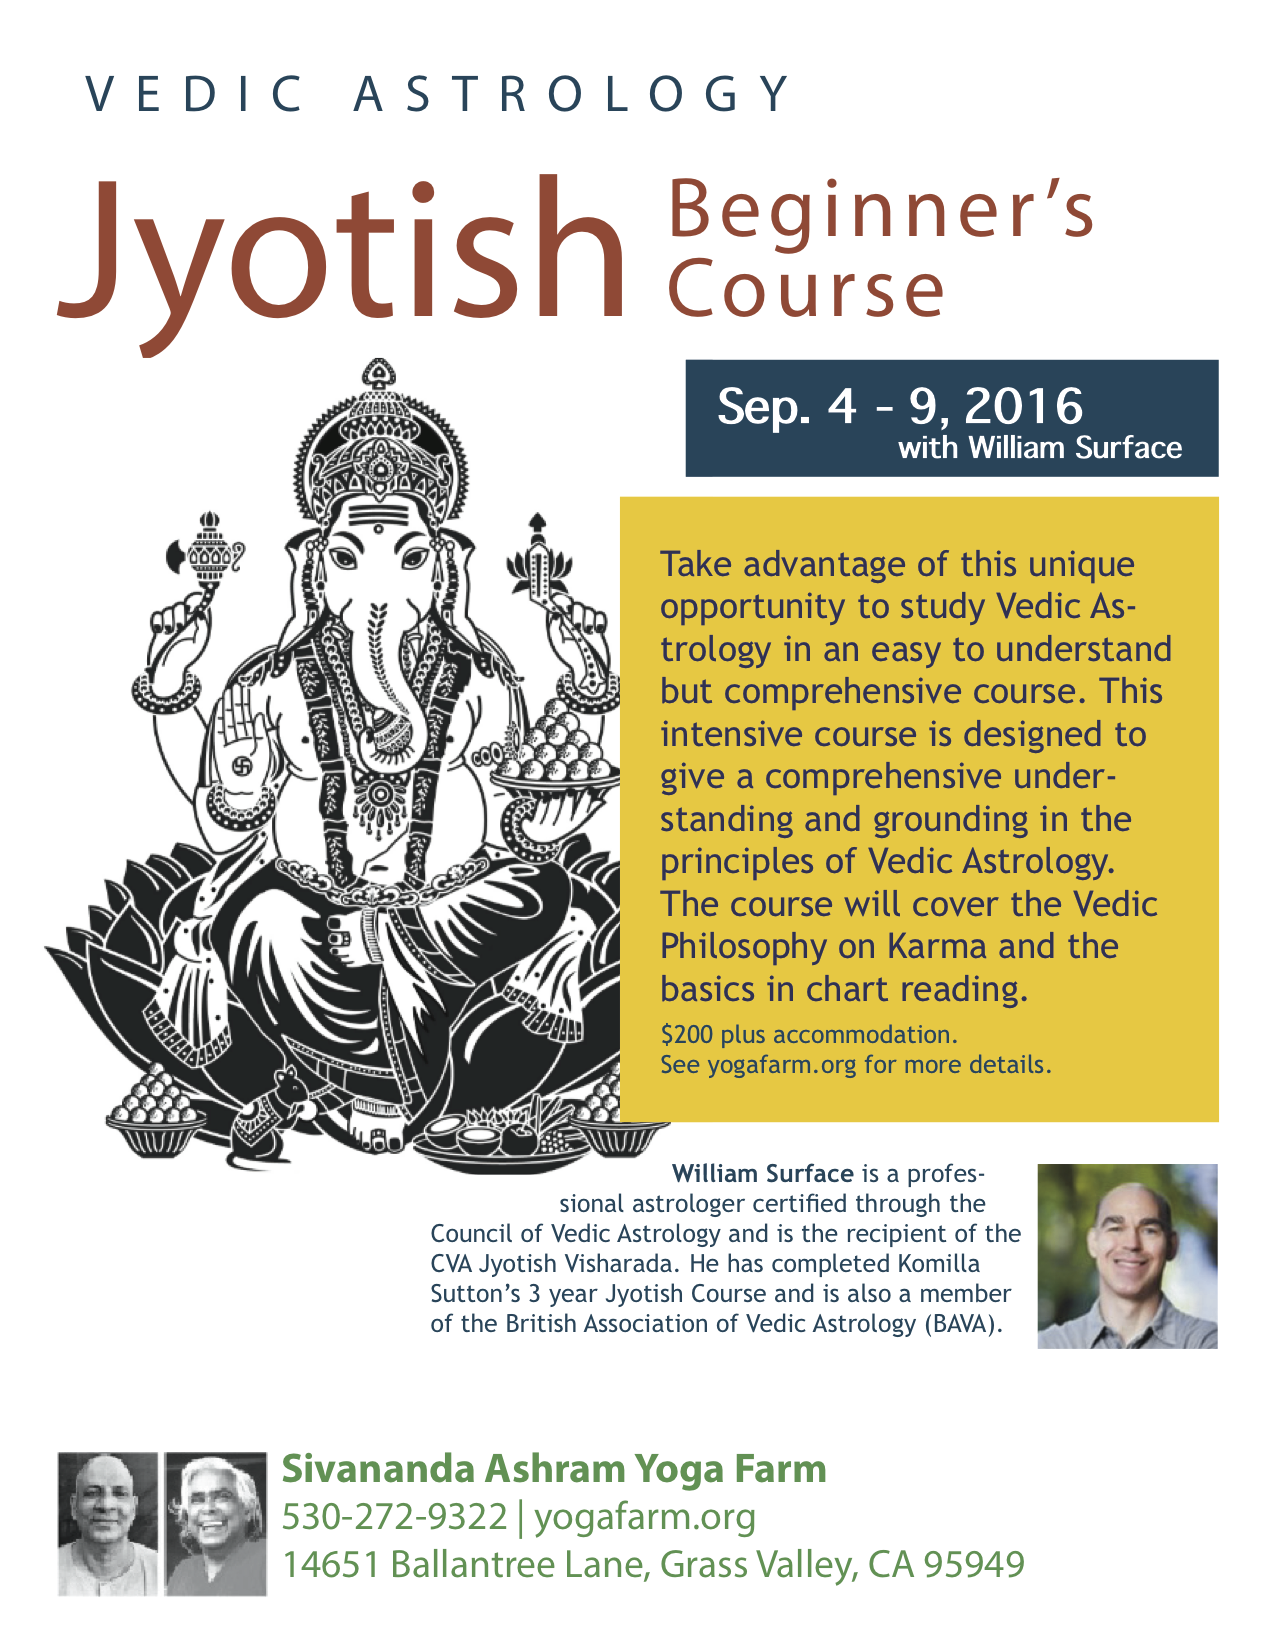 Jyotish Beginner's Course September 2016